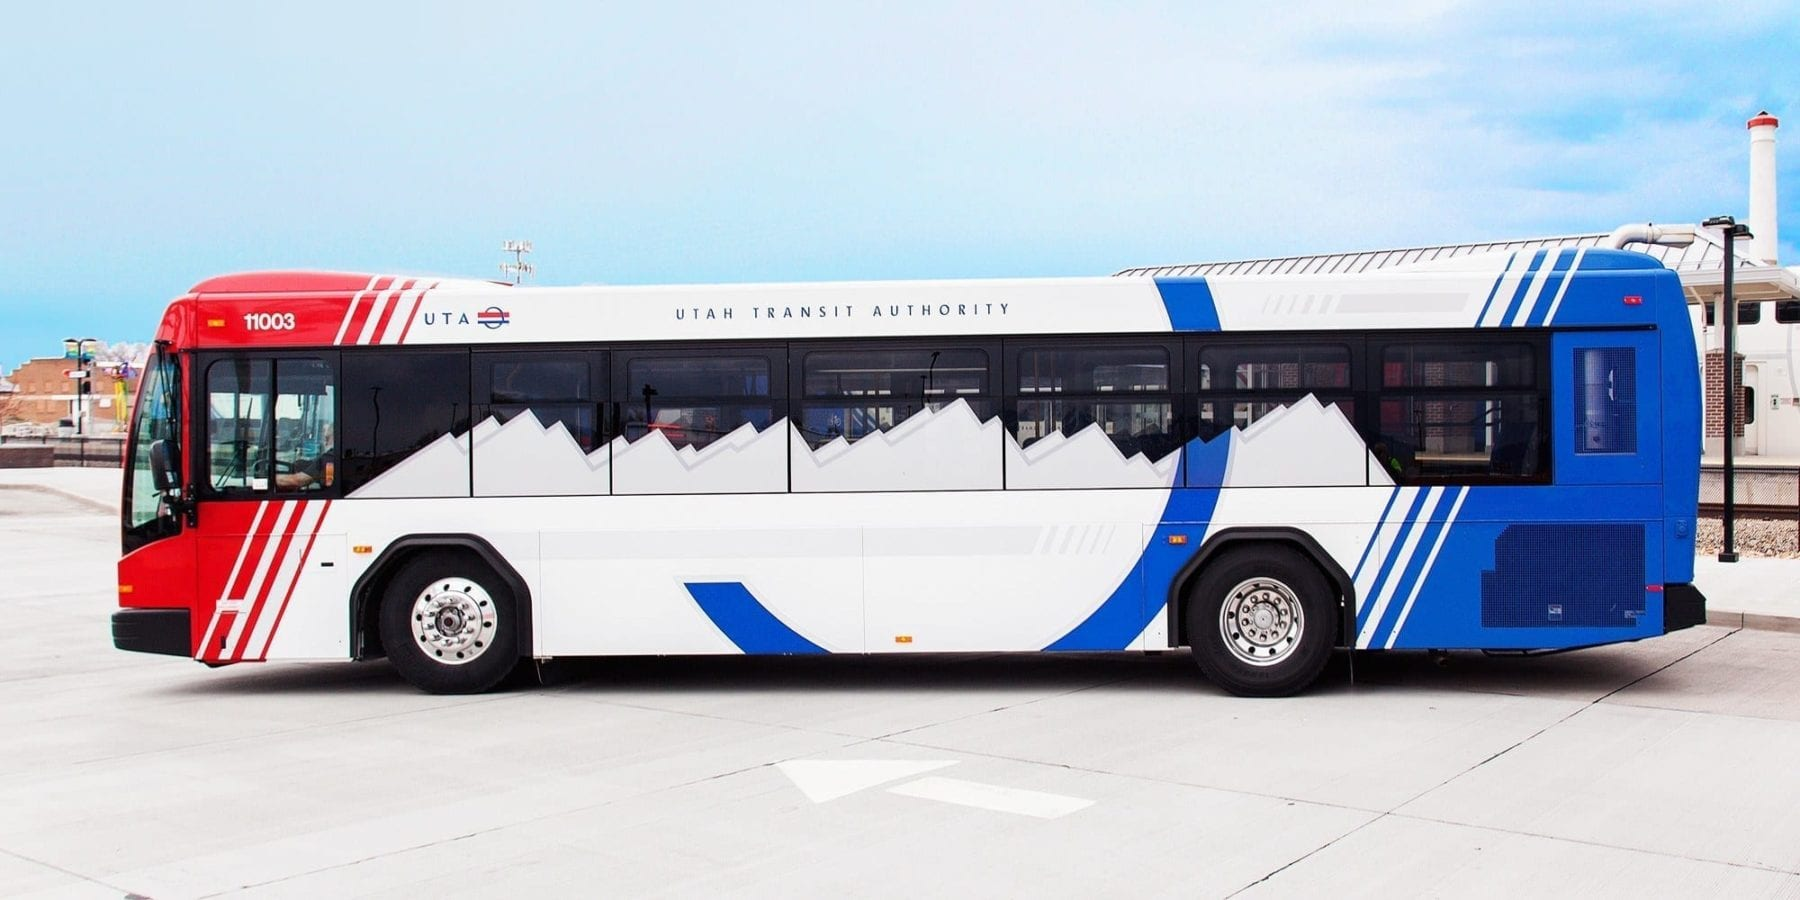 UTA Ski Bus - Salt Lake City